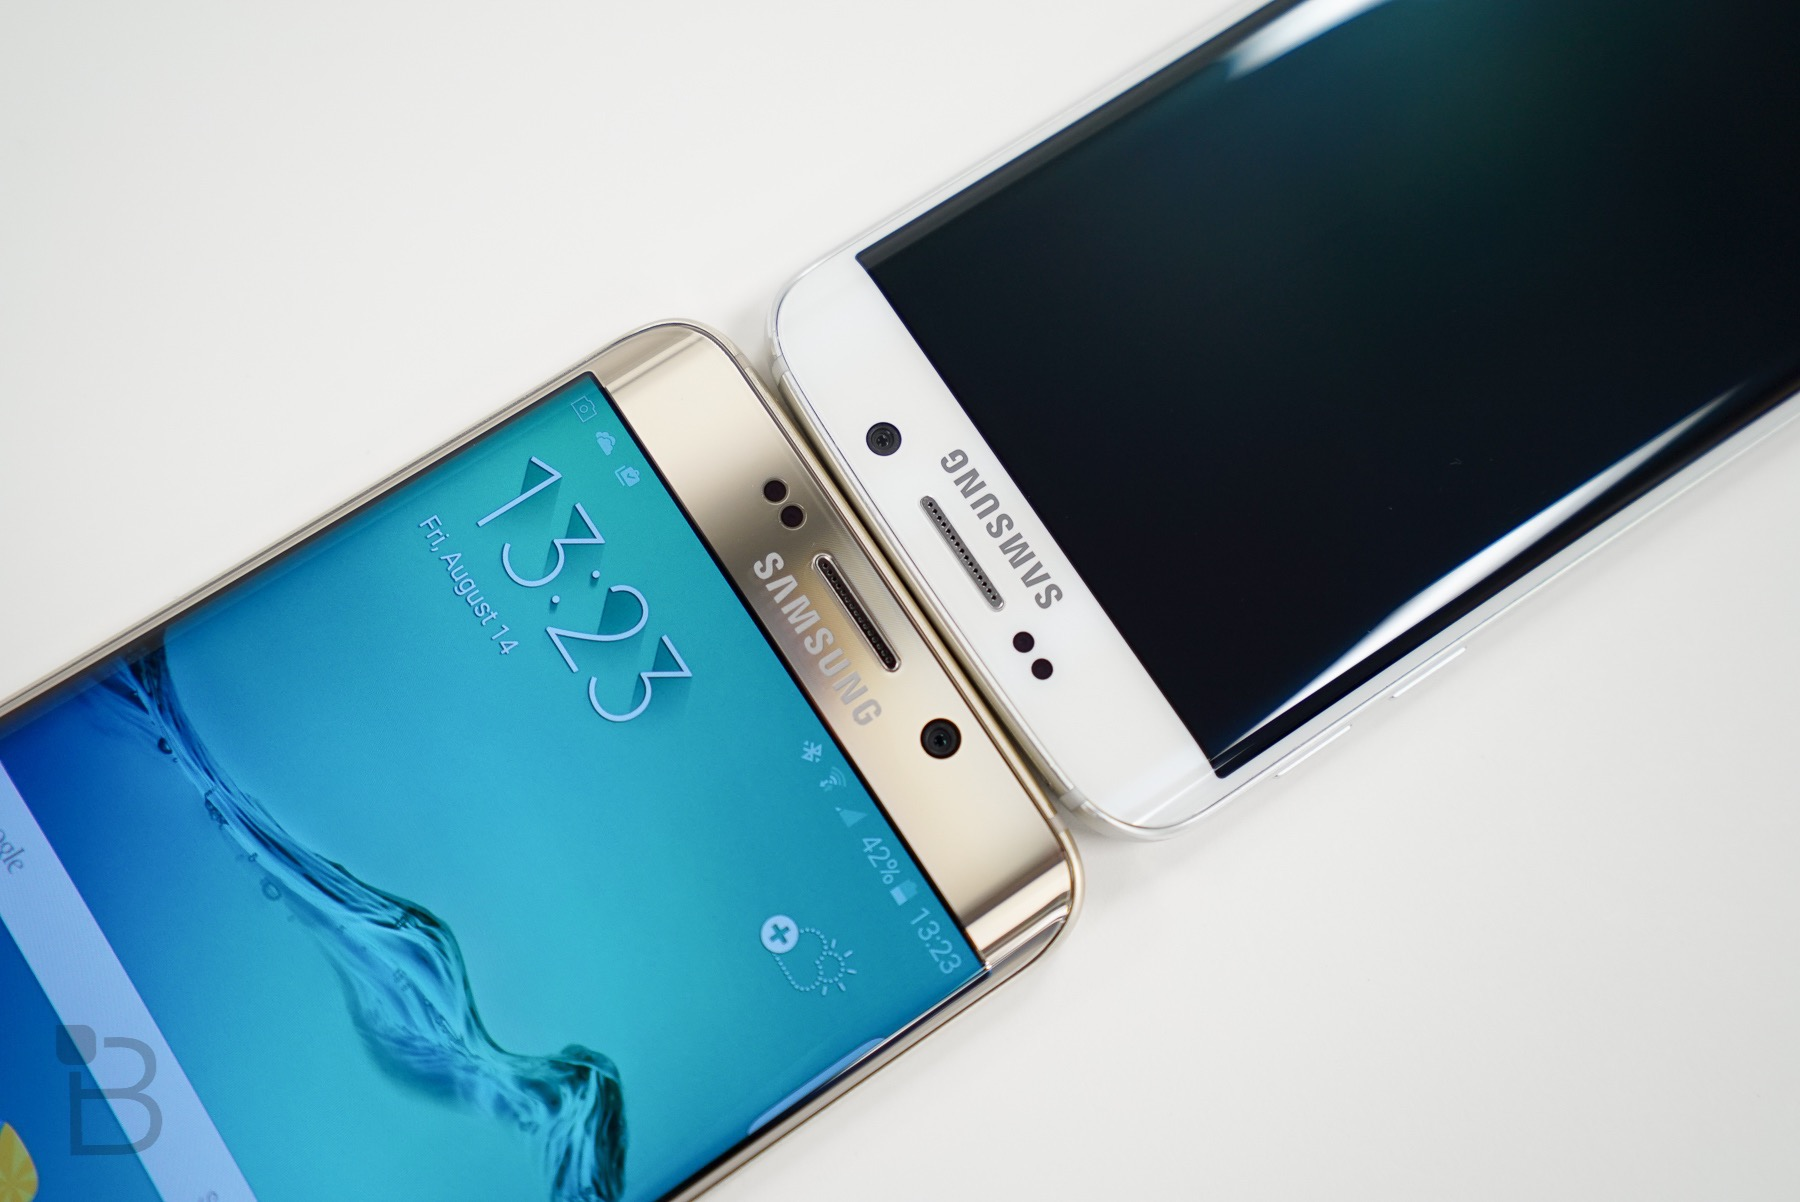 December-security-updates-for-galaxy-s7-and-galaxy-S7-edge